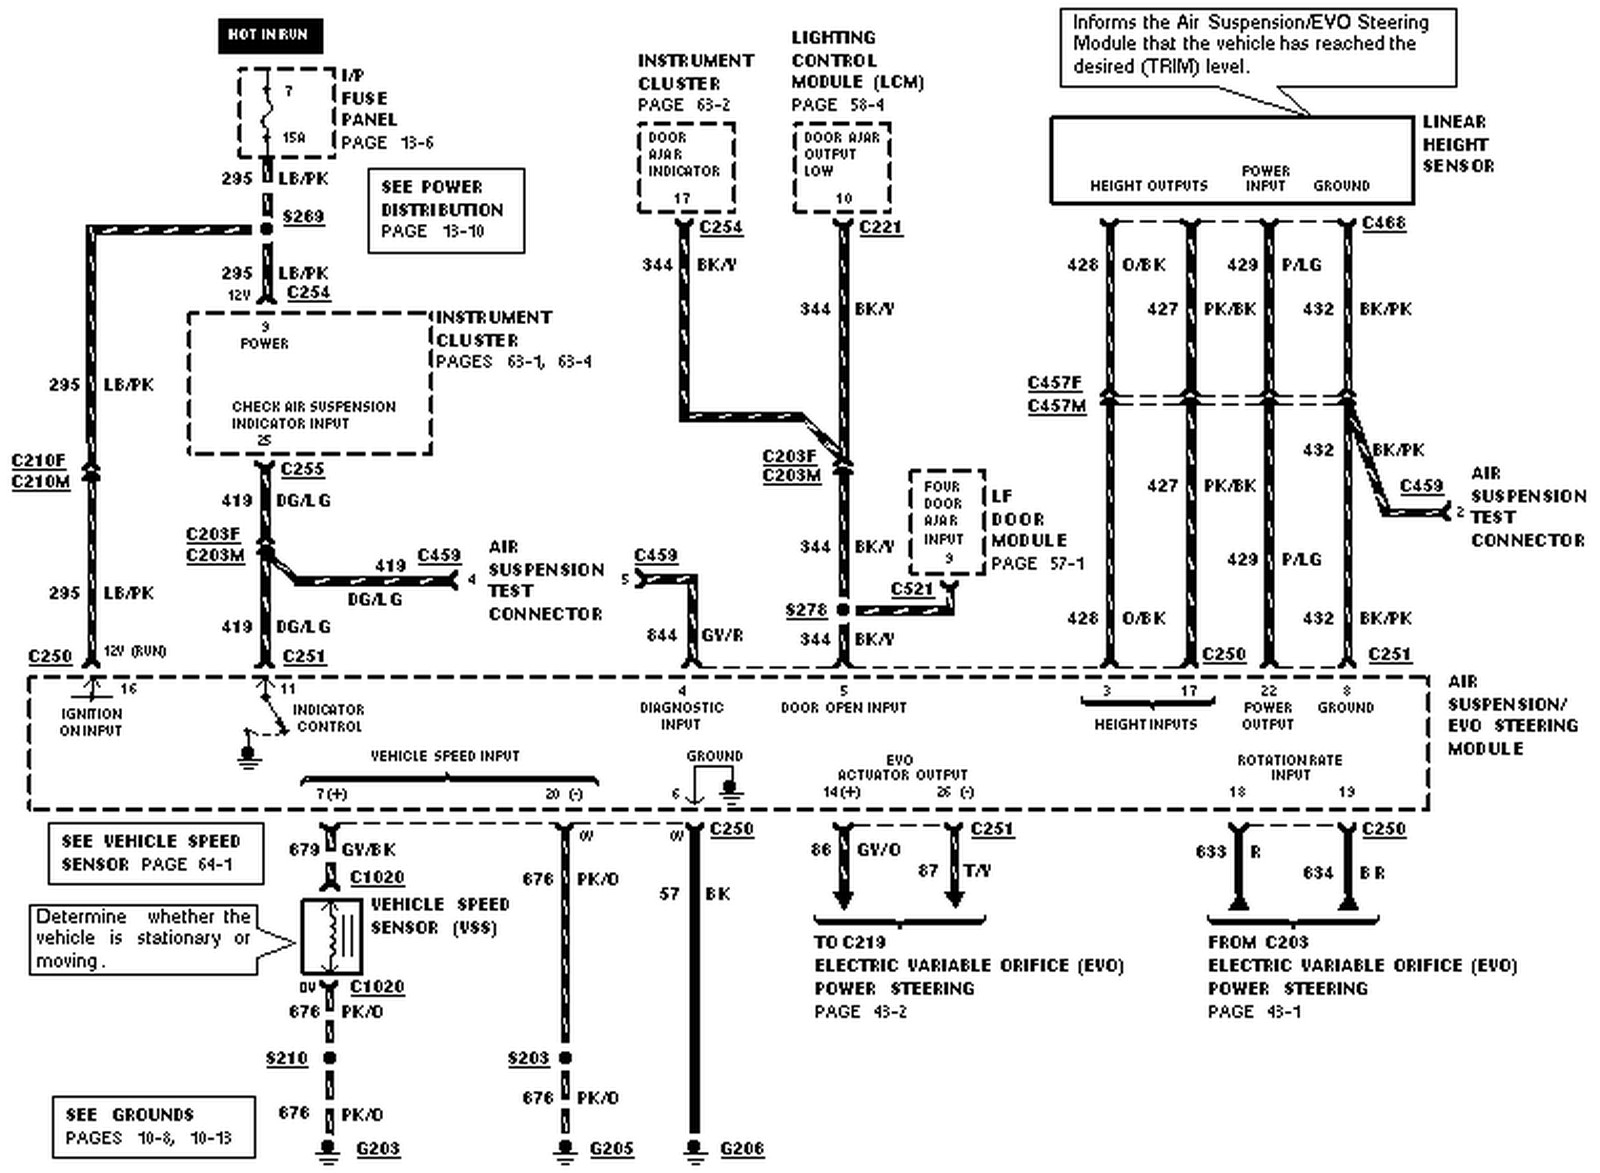 lincoln p203 wiring diagram - wiring diagram law-setup-a -  law-setup-a.cinemamanzonicasarano.it  cinemamanzonicasarano.it